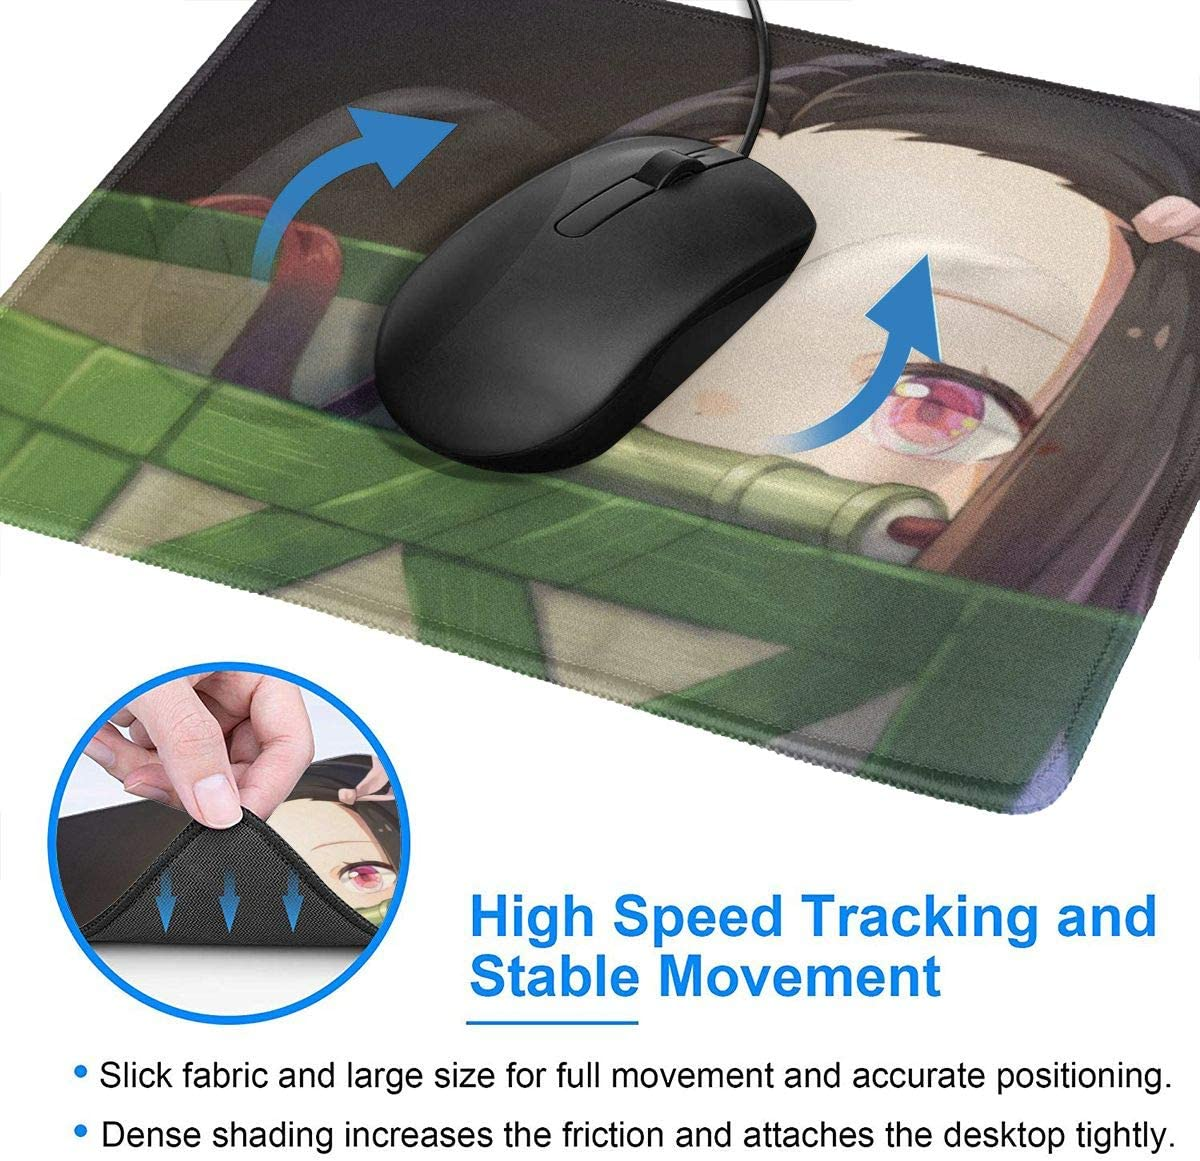 Kamado Nezuko Demon Slayer Mouse Pad Non-Slip Gaming Mouse Pad with Stitched Edge Computer PC Mousepad Rubber Base for Office Home